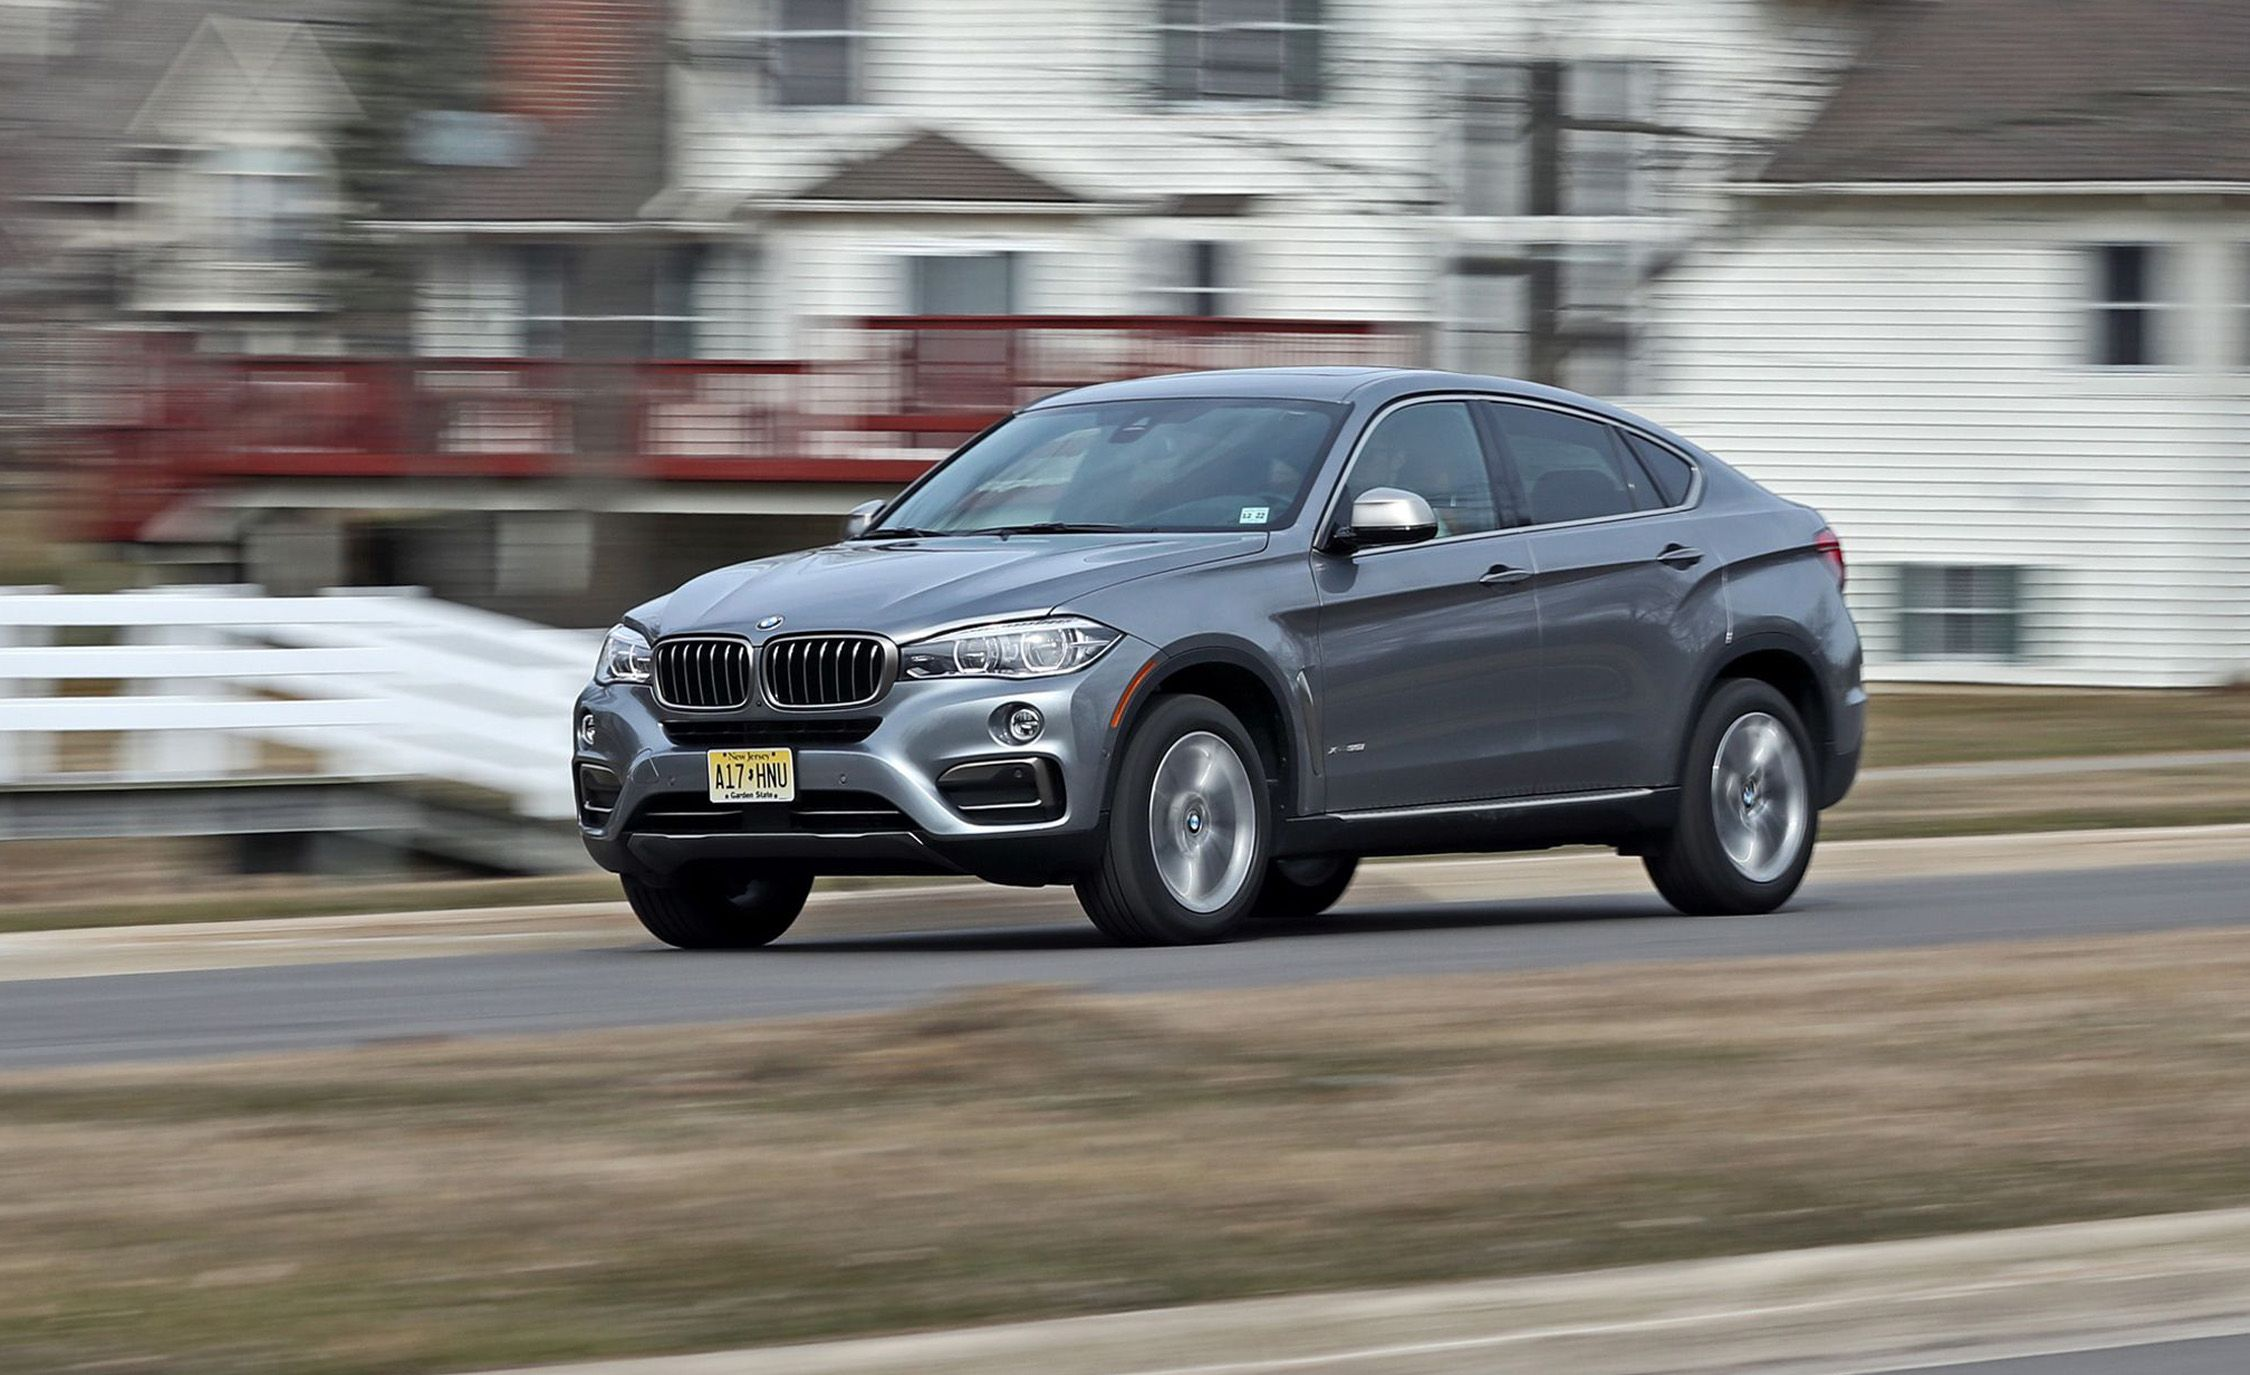 2018 Bmw X6 Xdrive35i Instrumented Test Review Car And Driver